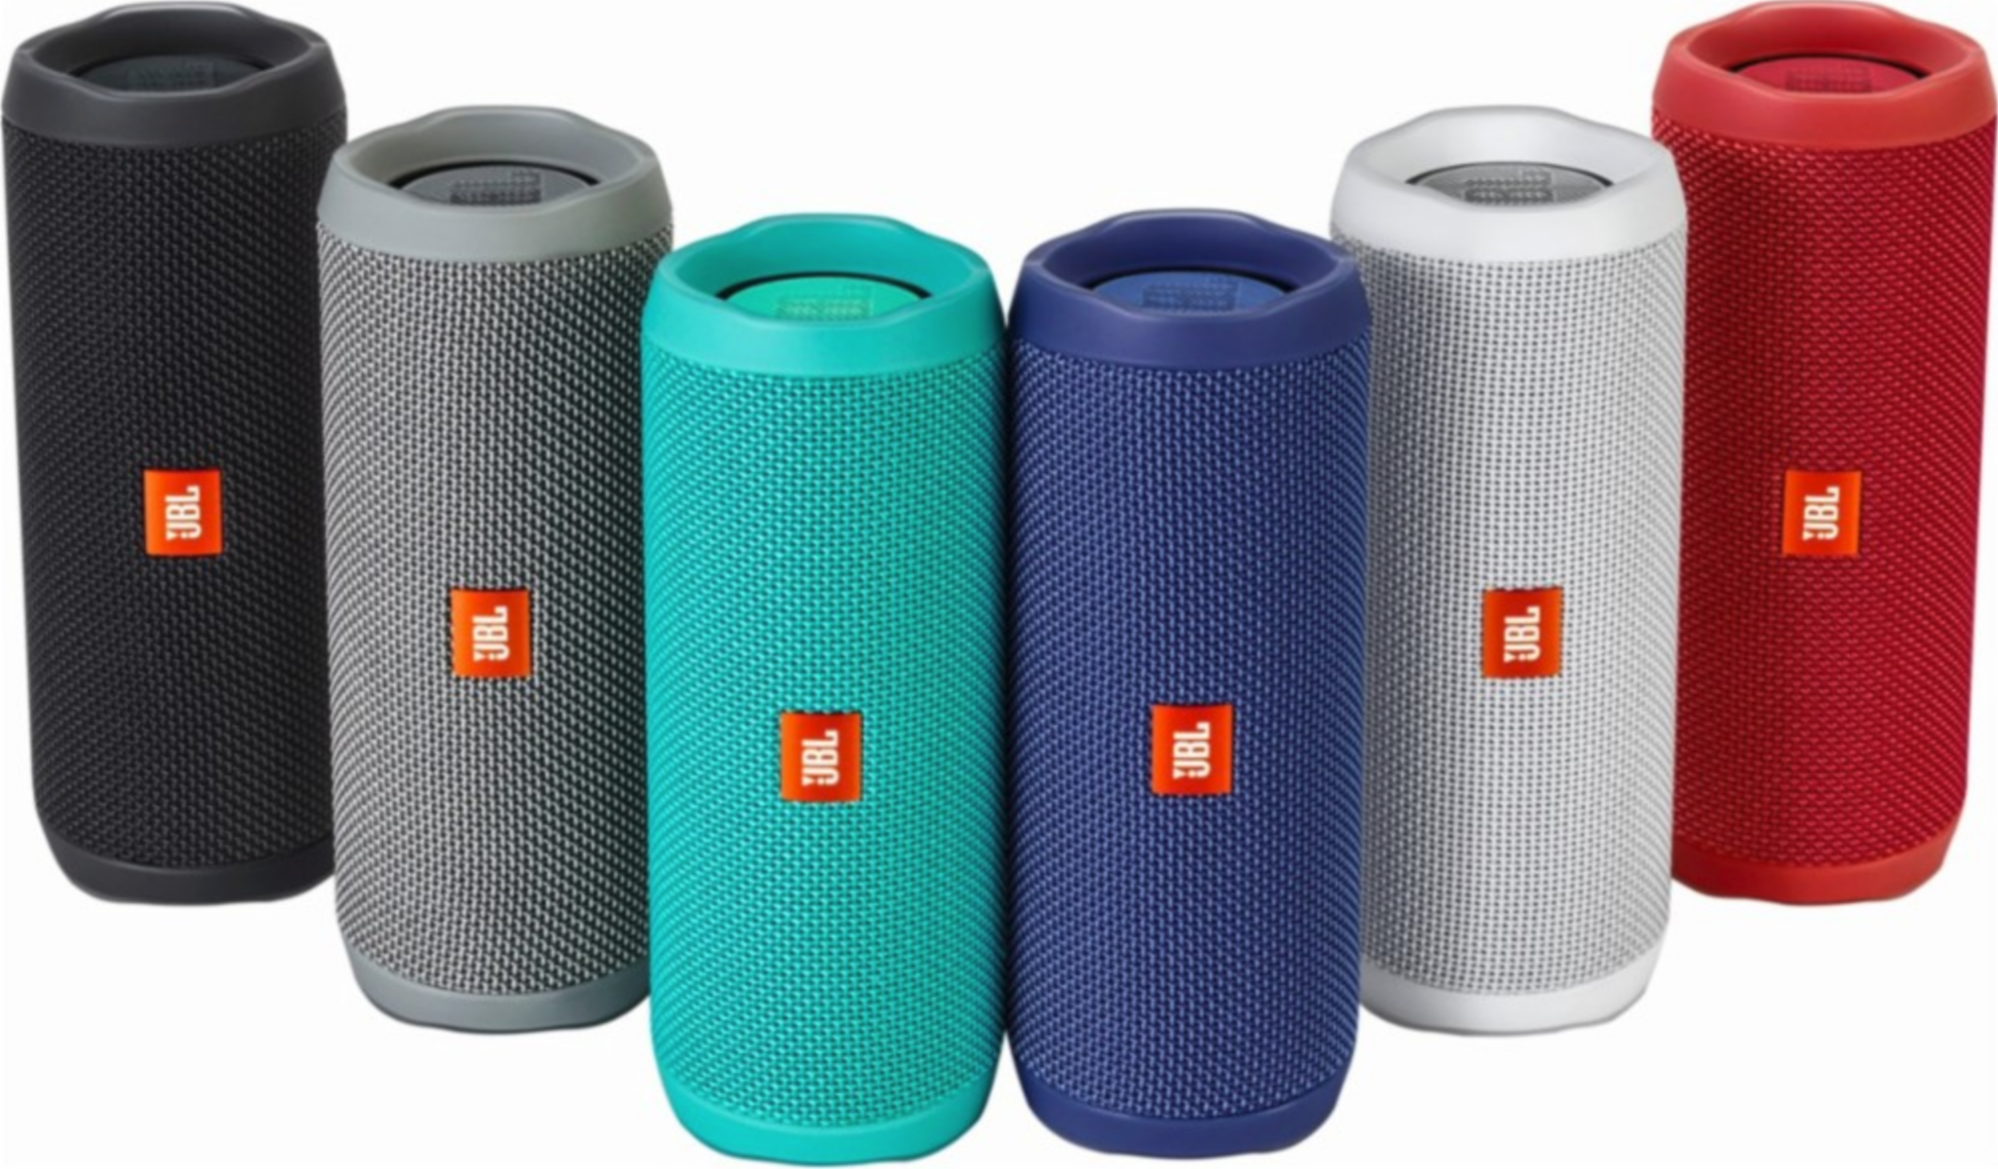 The JBL Flip 4 Bluetooth speaker is $60 ($40 off) for My